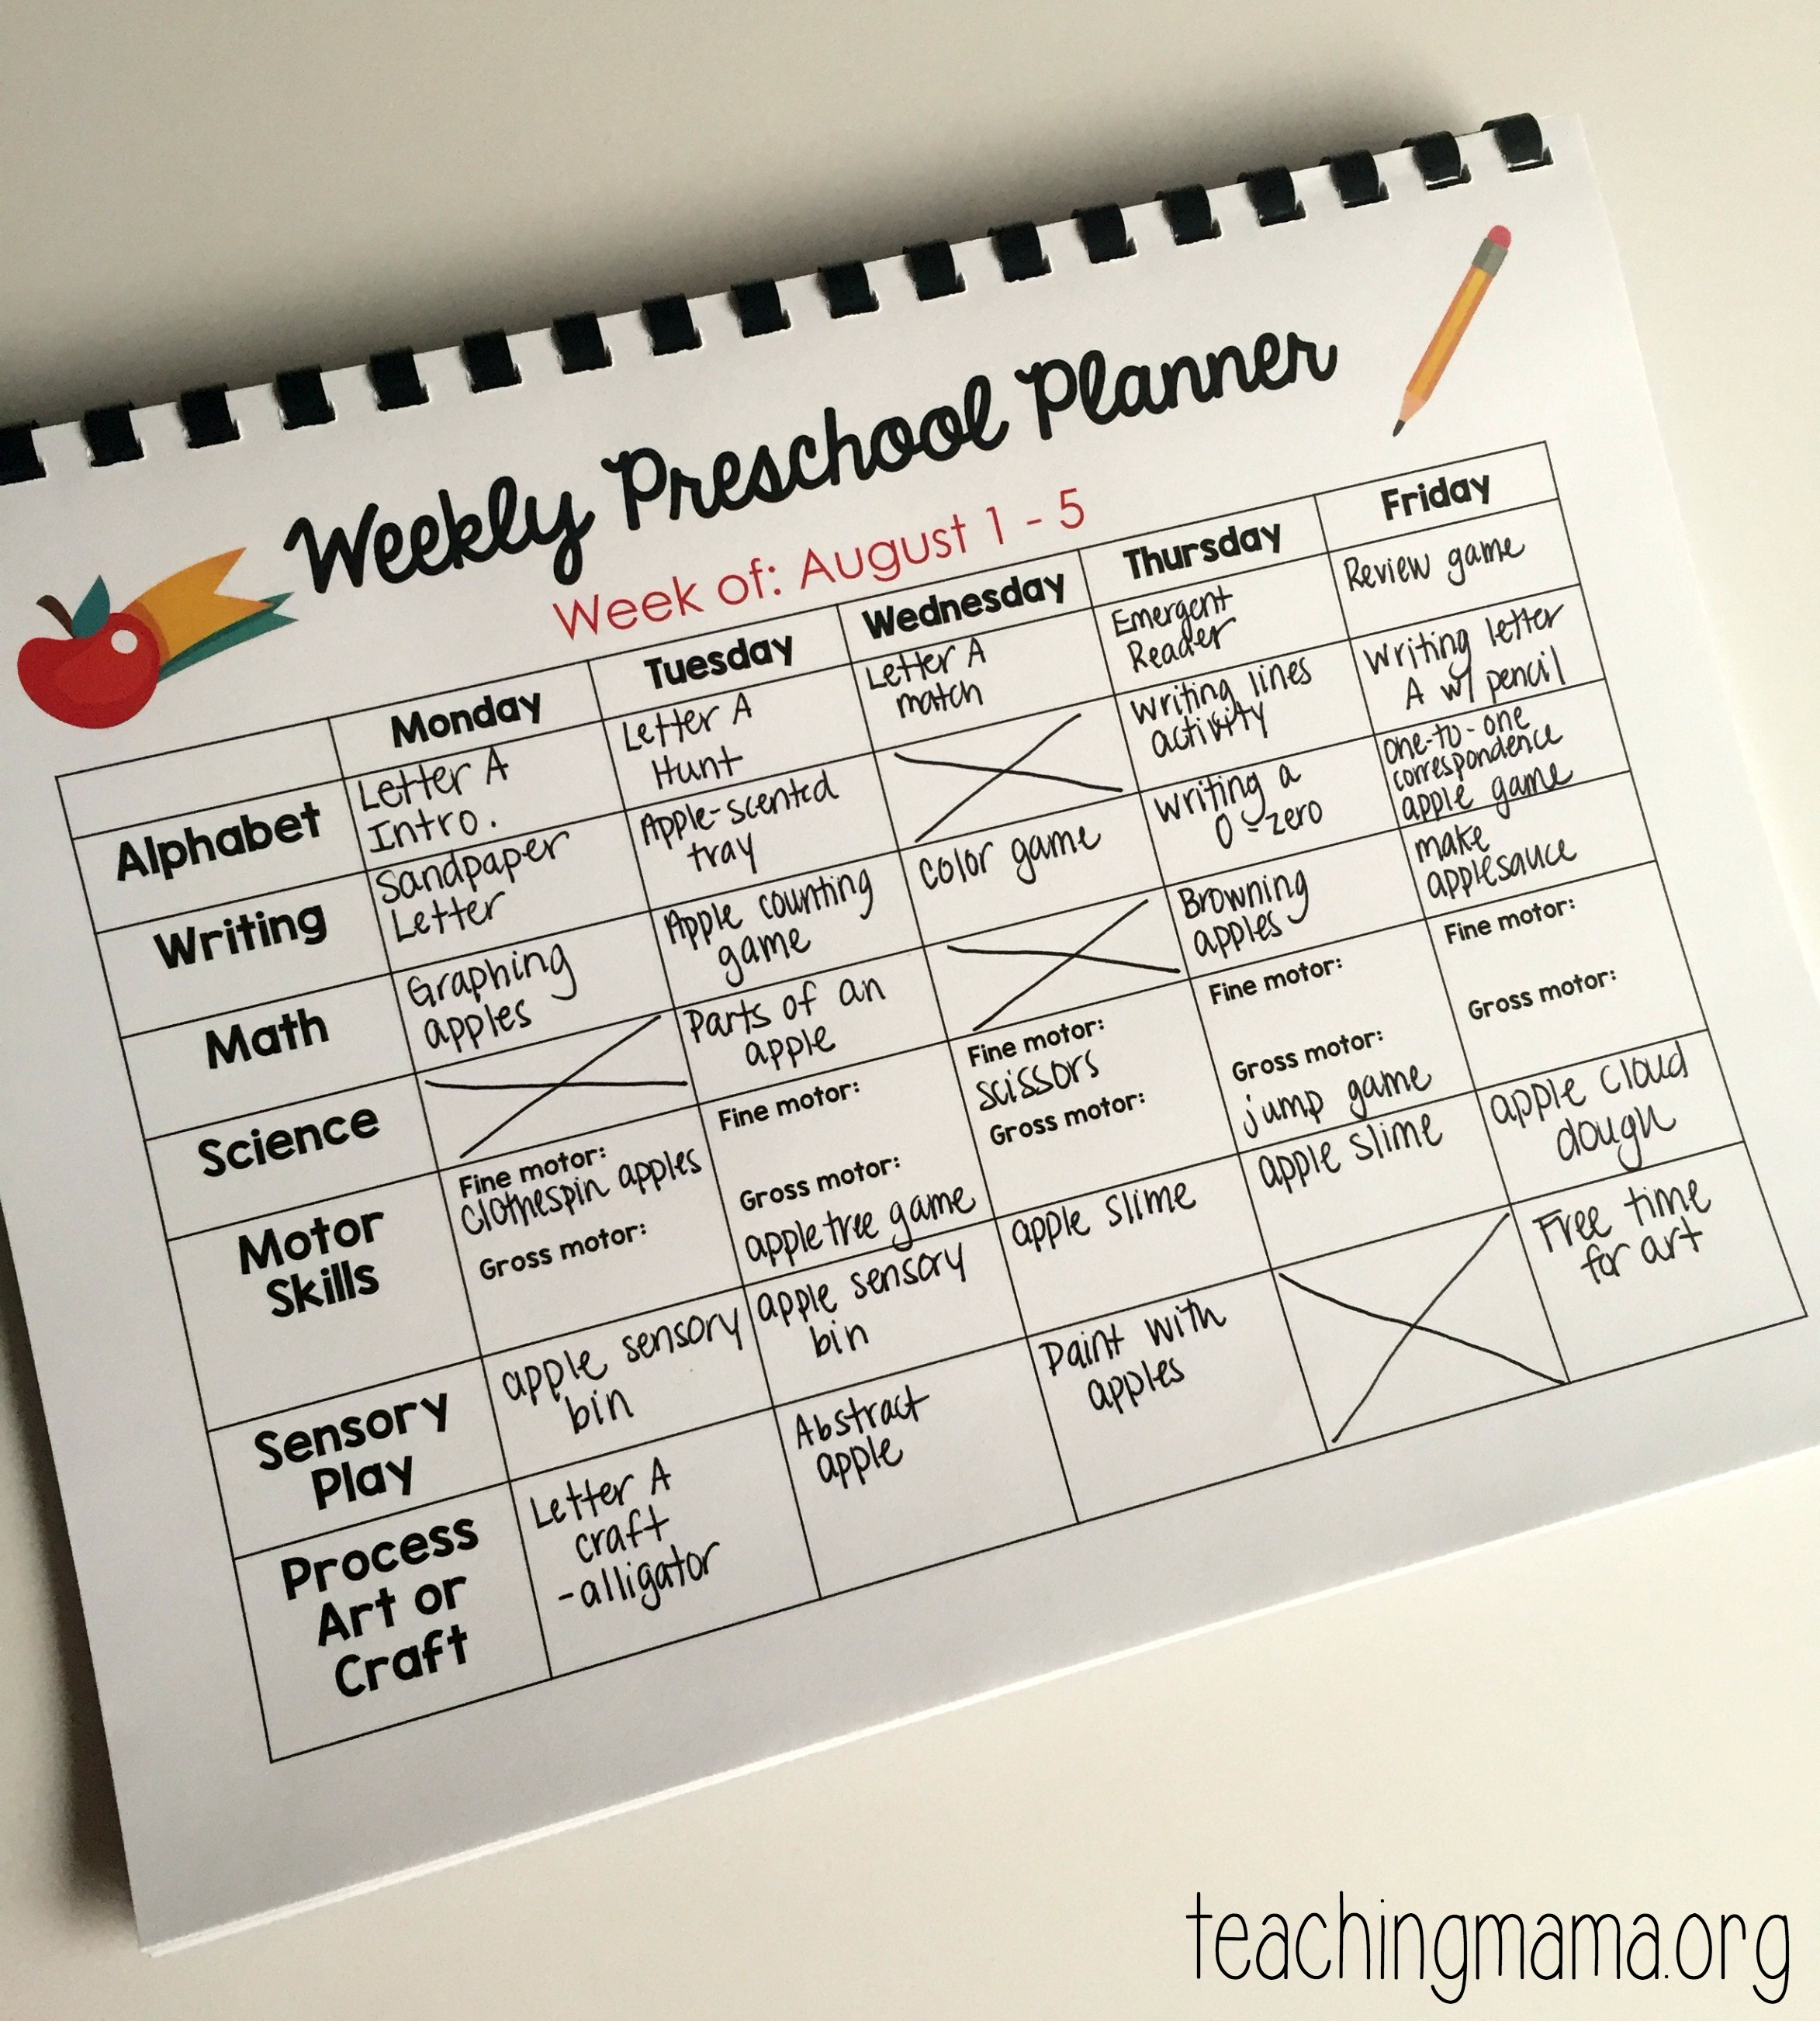 Printable Preschool Planner - On Sale Now! - Teaching Mama